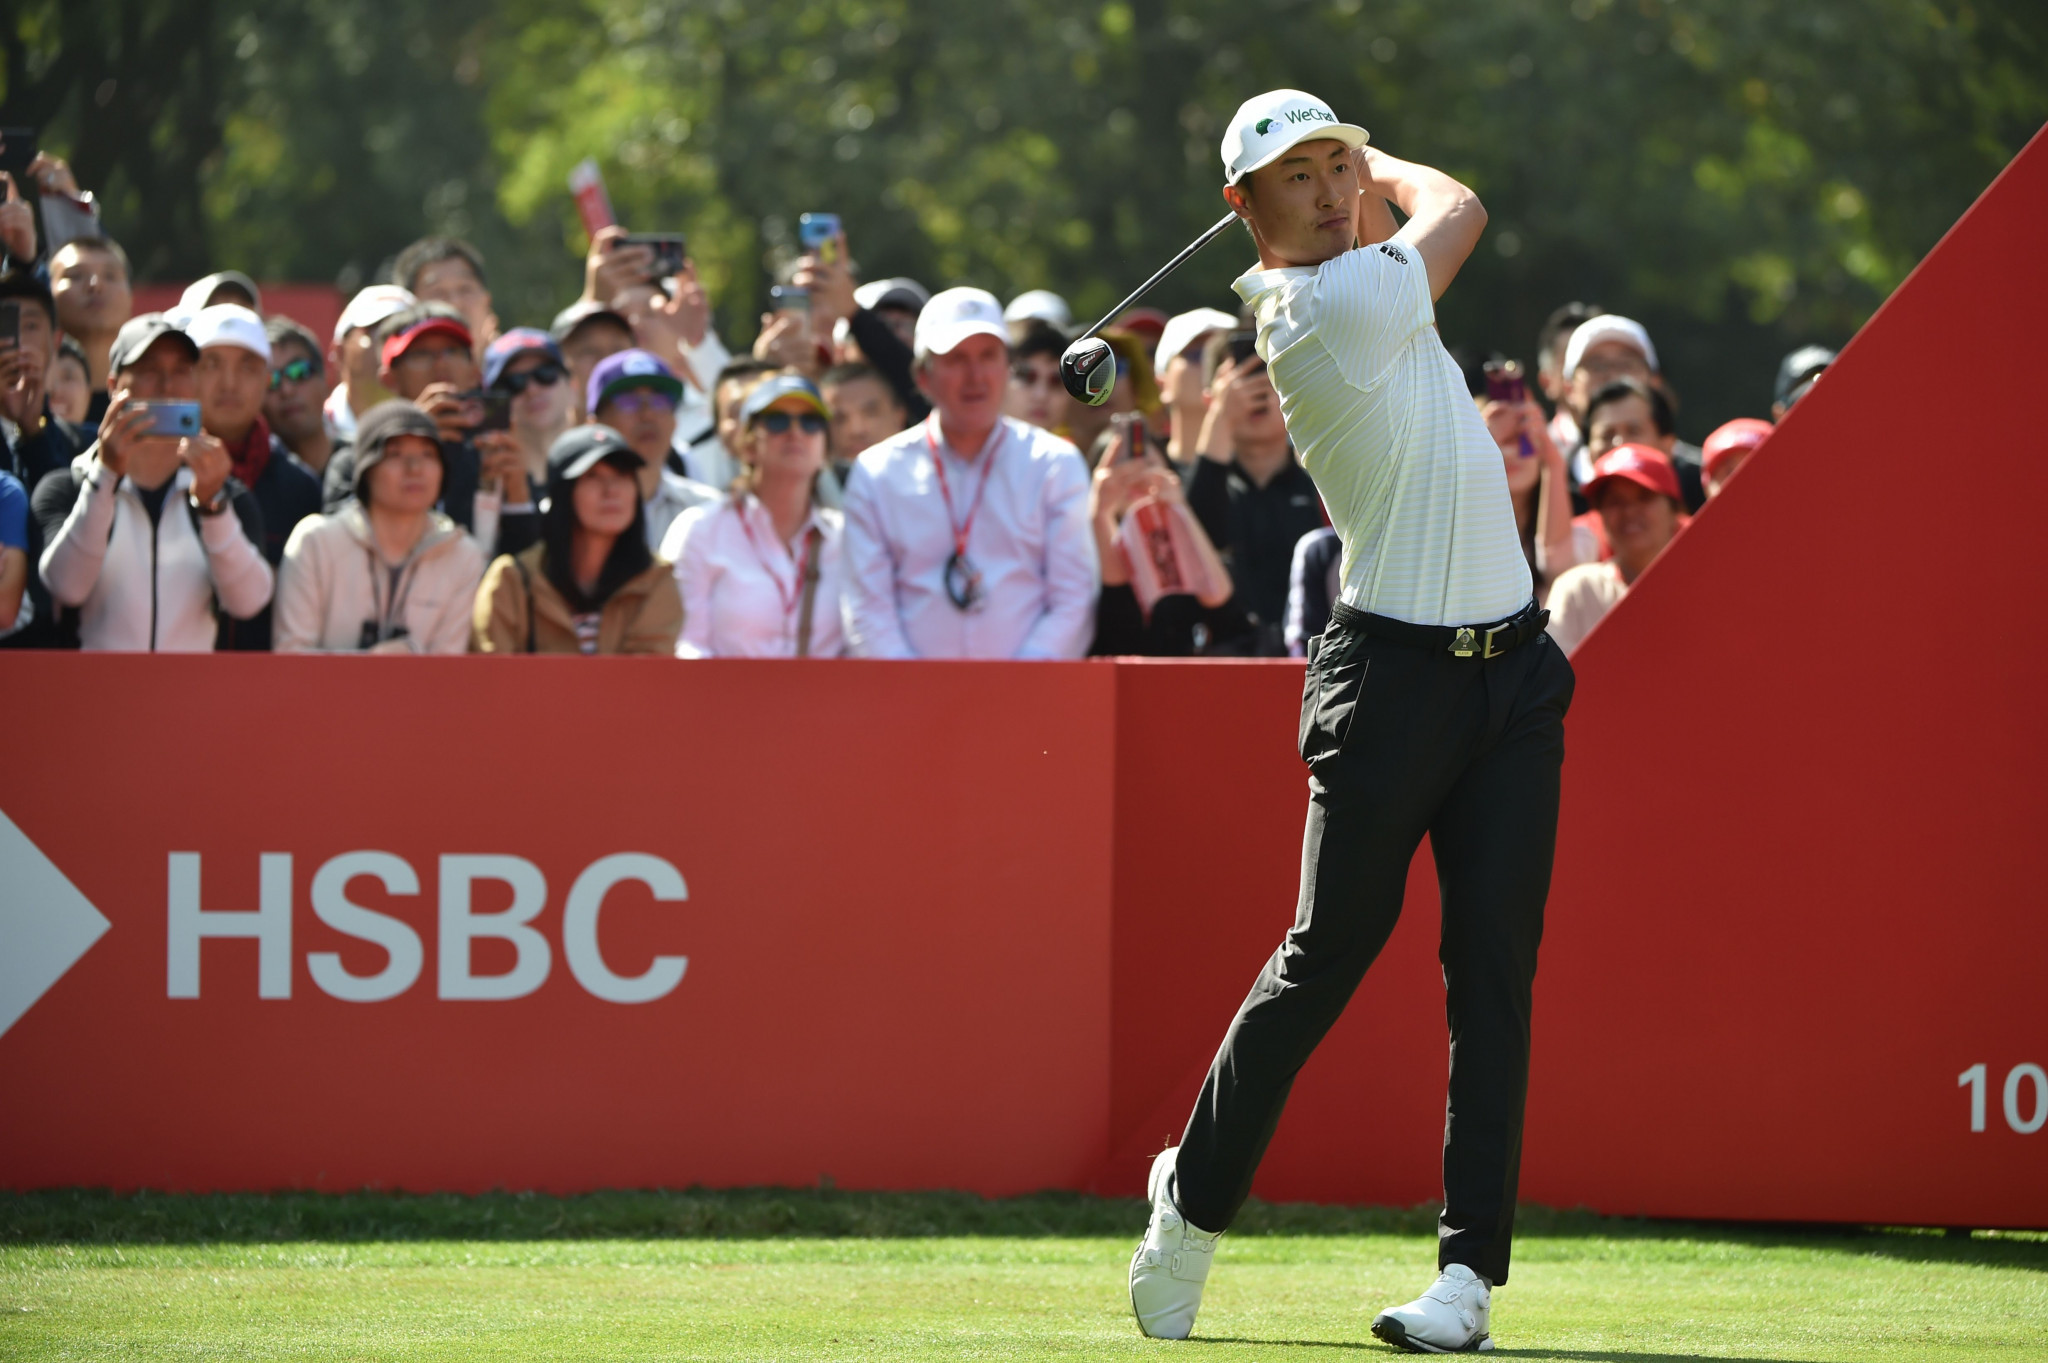 Li on top with McIlroy solid at WGC-HSBC Champions